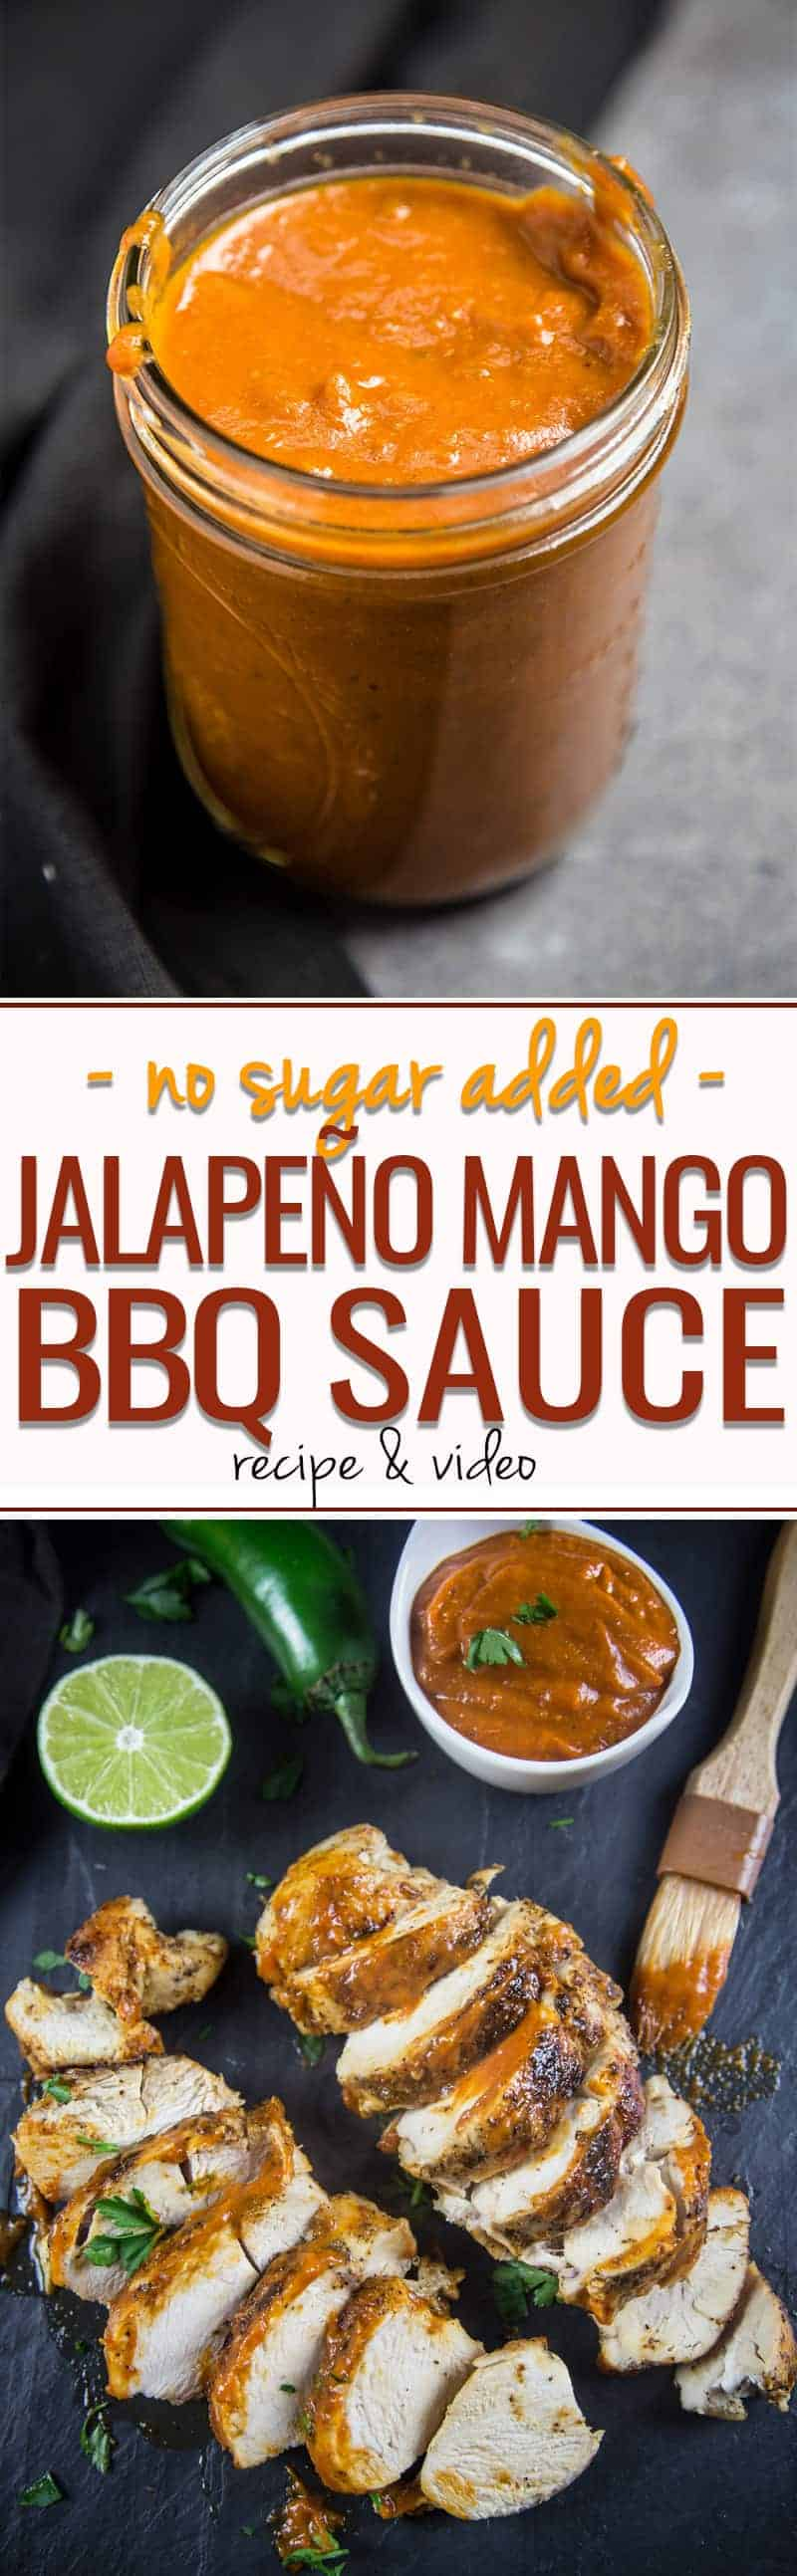 Watching your sugar intake? This Spicy Jalapeño Mango BBQ Sauce has no added sugar. It's naturally sweetened with caramelized onions and mangos.